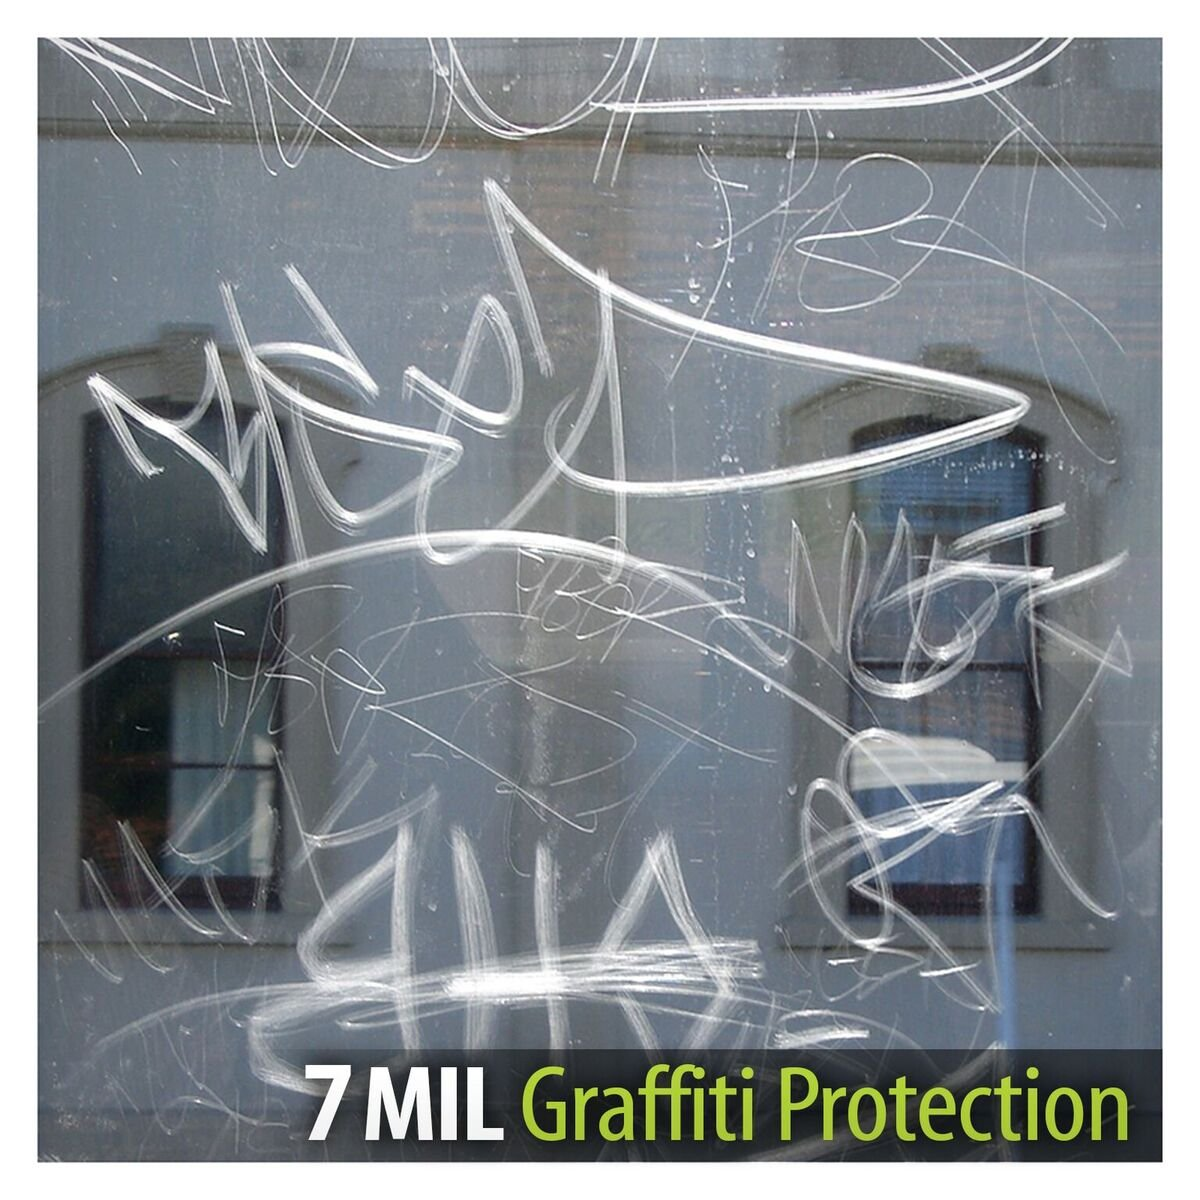 BDF AG7M Window Film Graffiti Protection 7 Mil Clear (60in X 25ft) by Buydecorativefilm (Image #4)